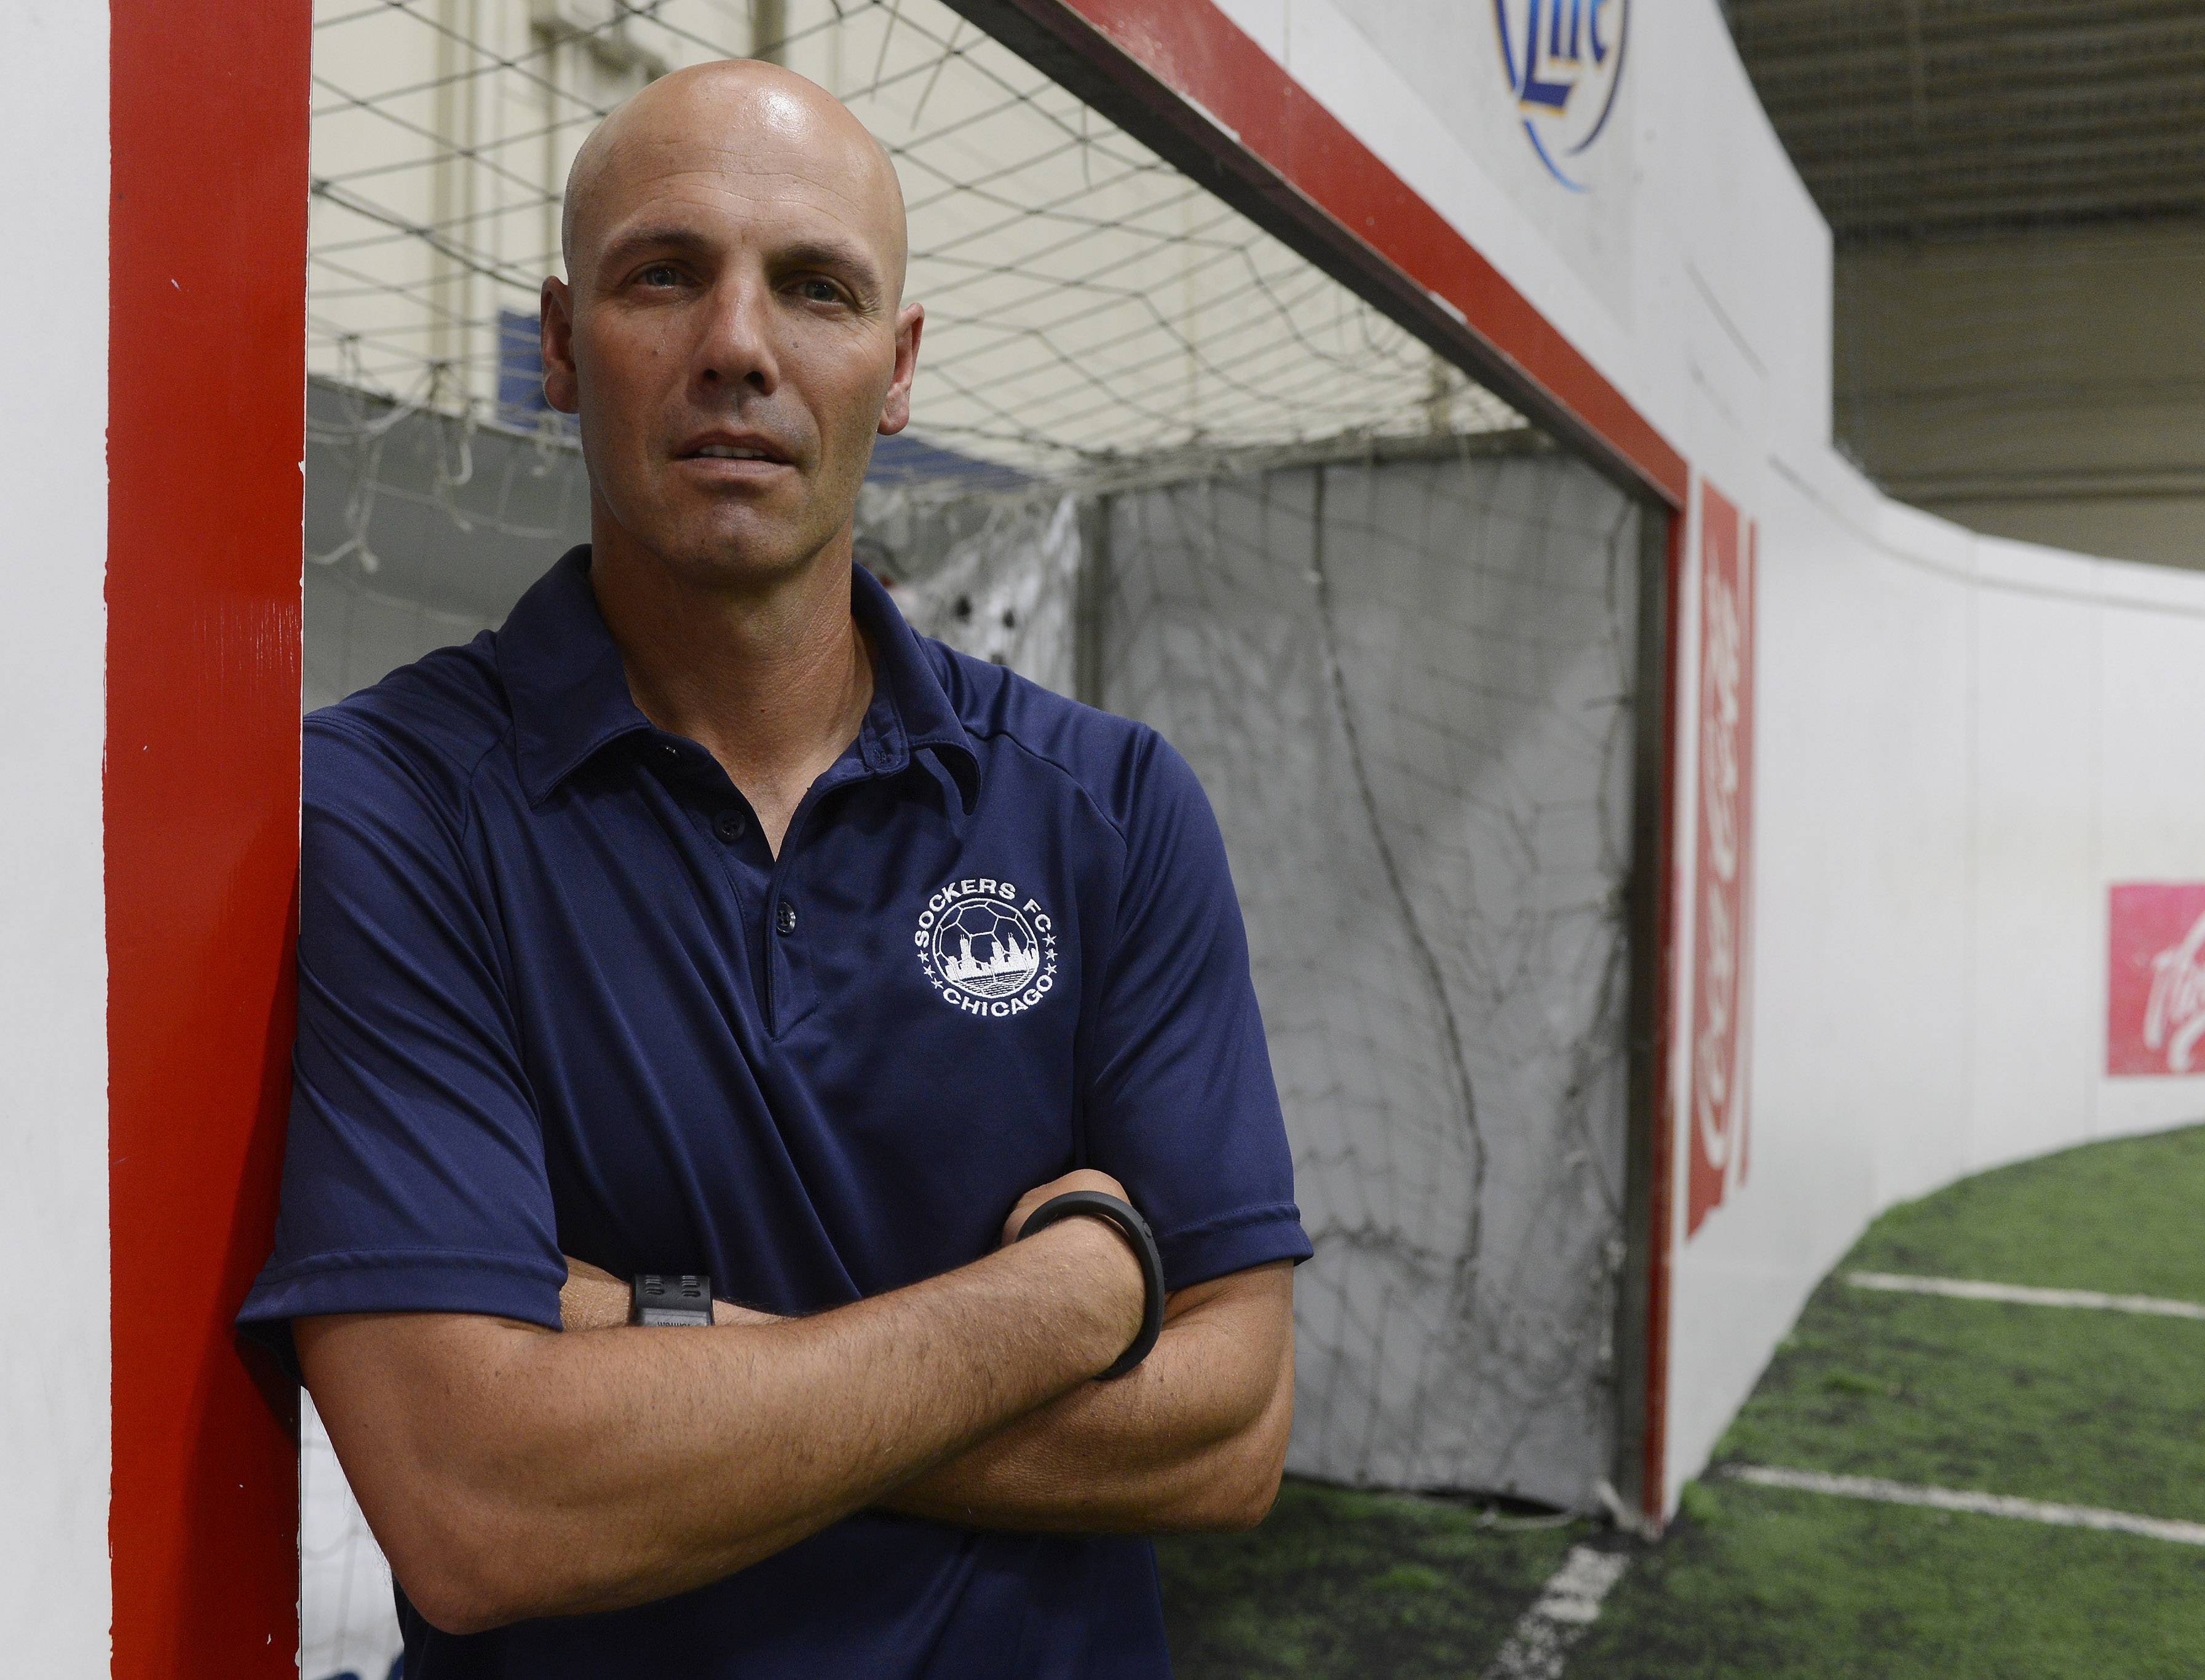 David Richardson, president of the Sockers FC Chicago club in Palatine, coached World Cup player Michael Bradley when he was a member of the club from the ages of 10 to 15.